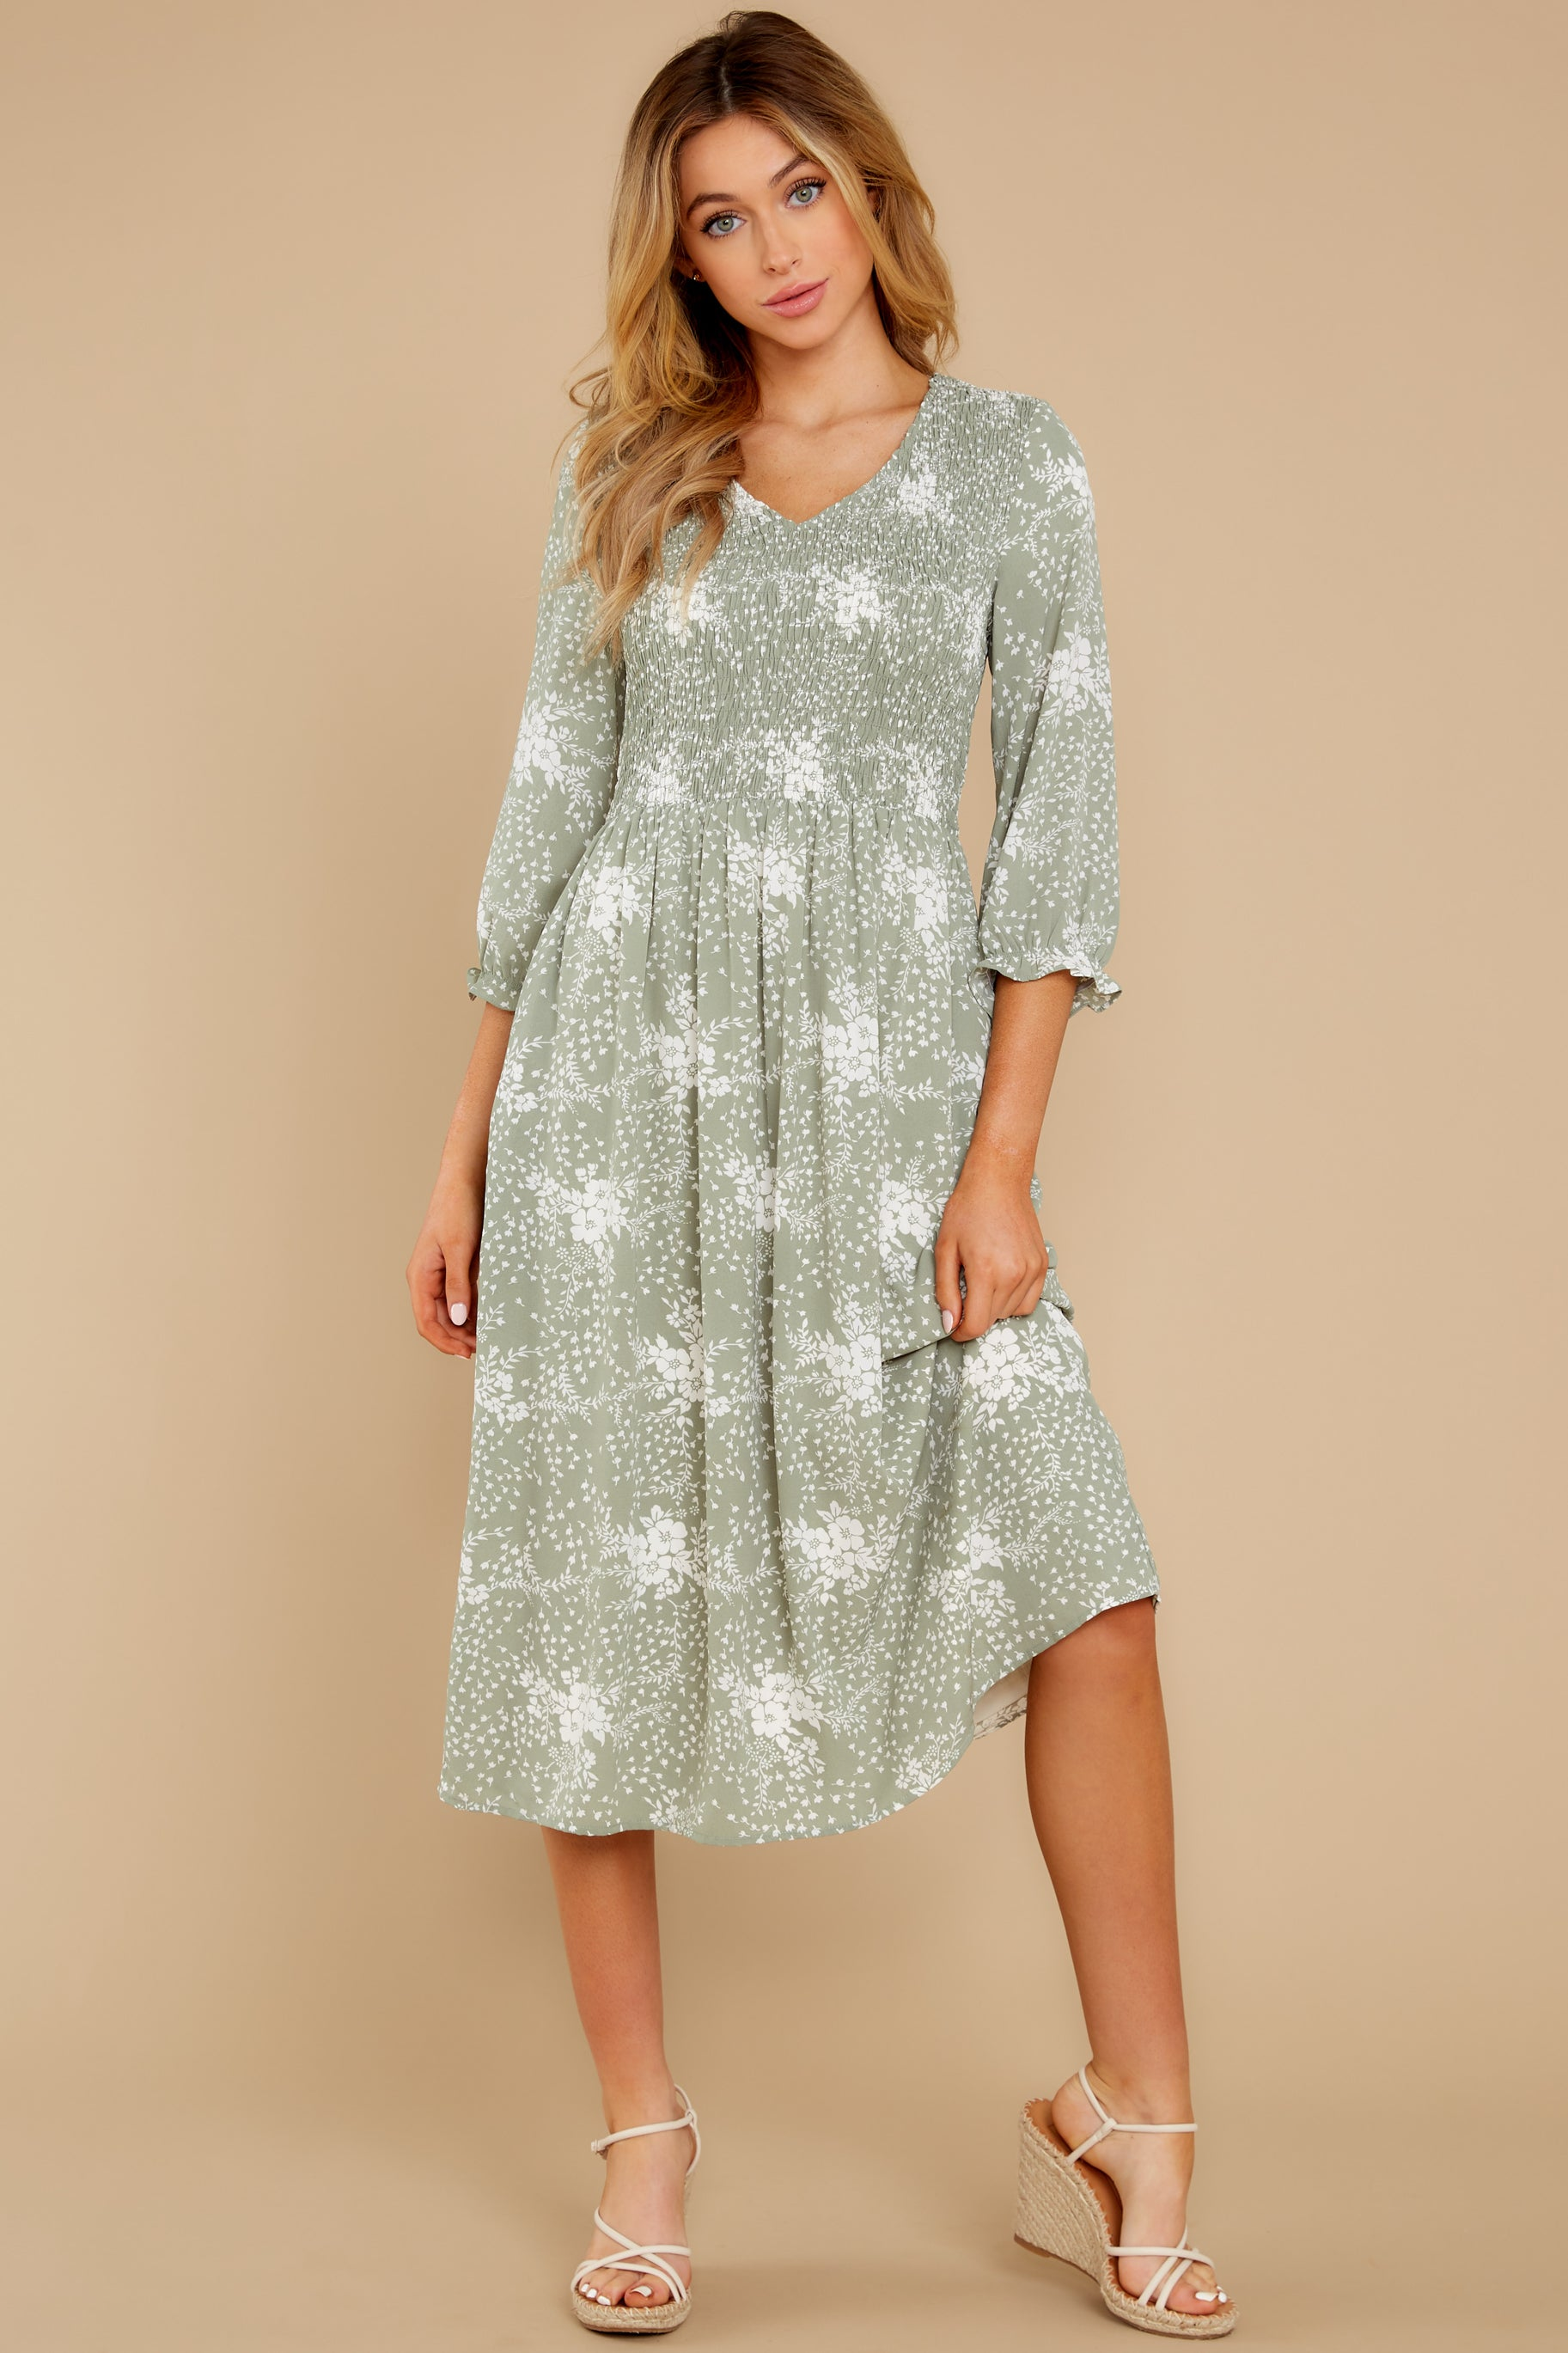 5 Above It All Sage Print Midi Dress at reddress.com